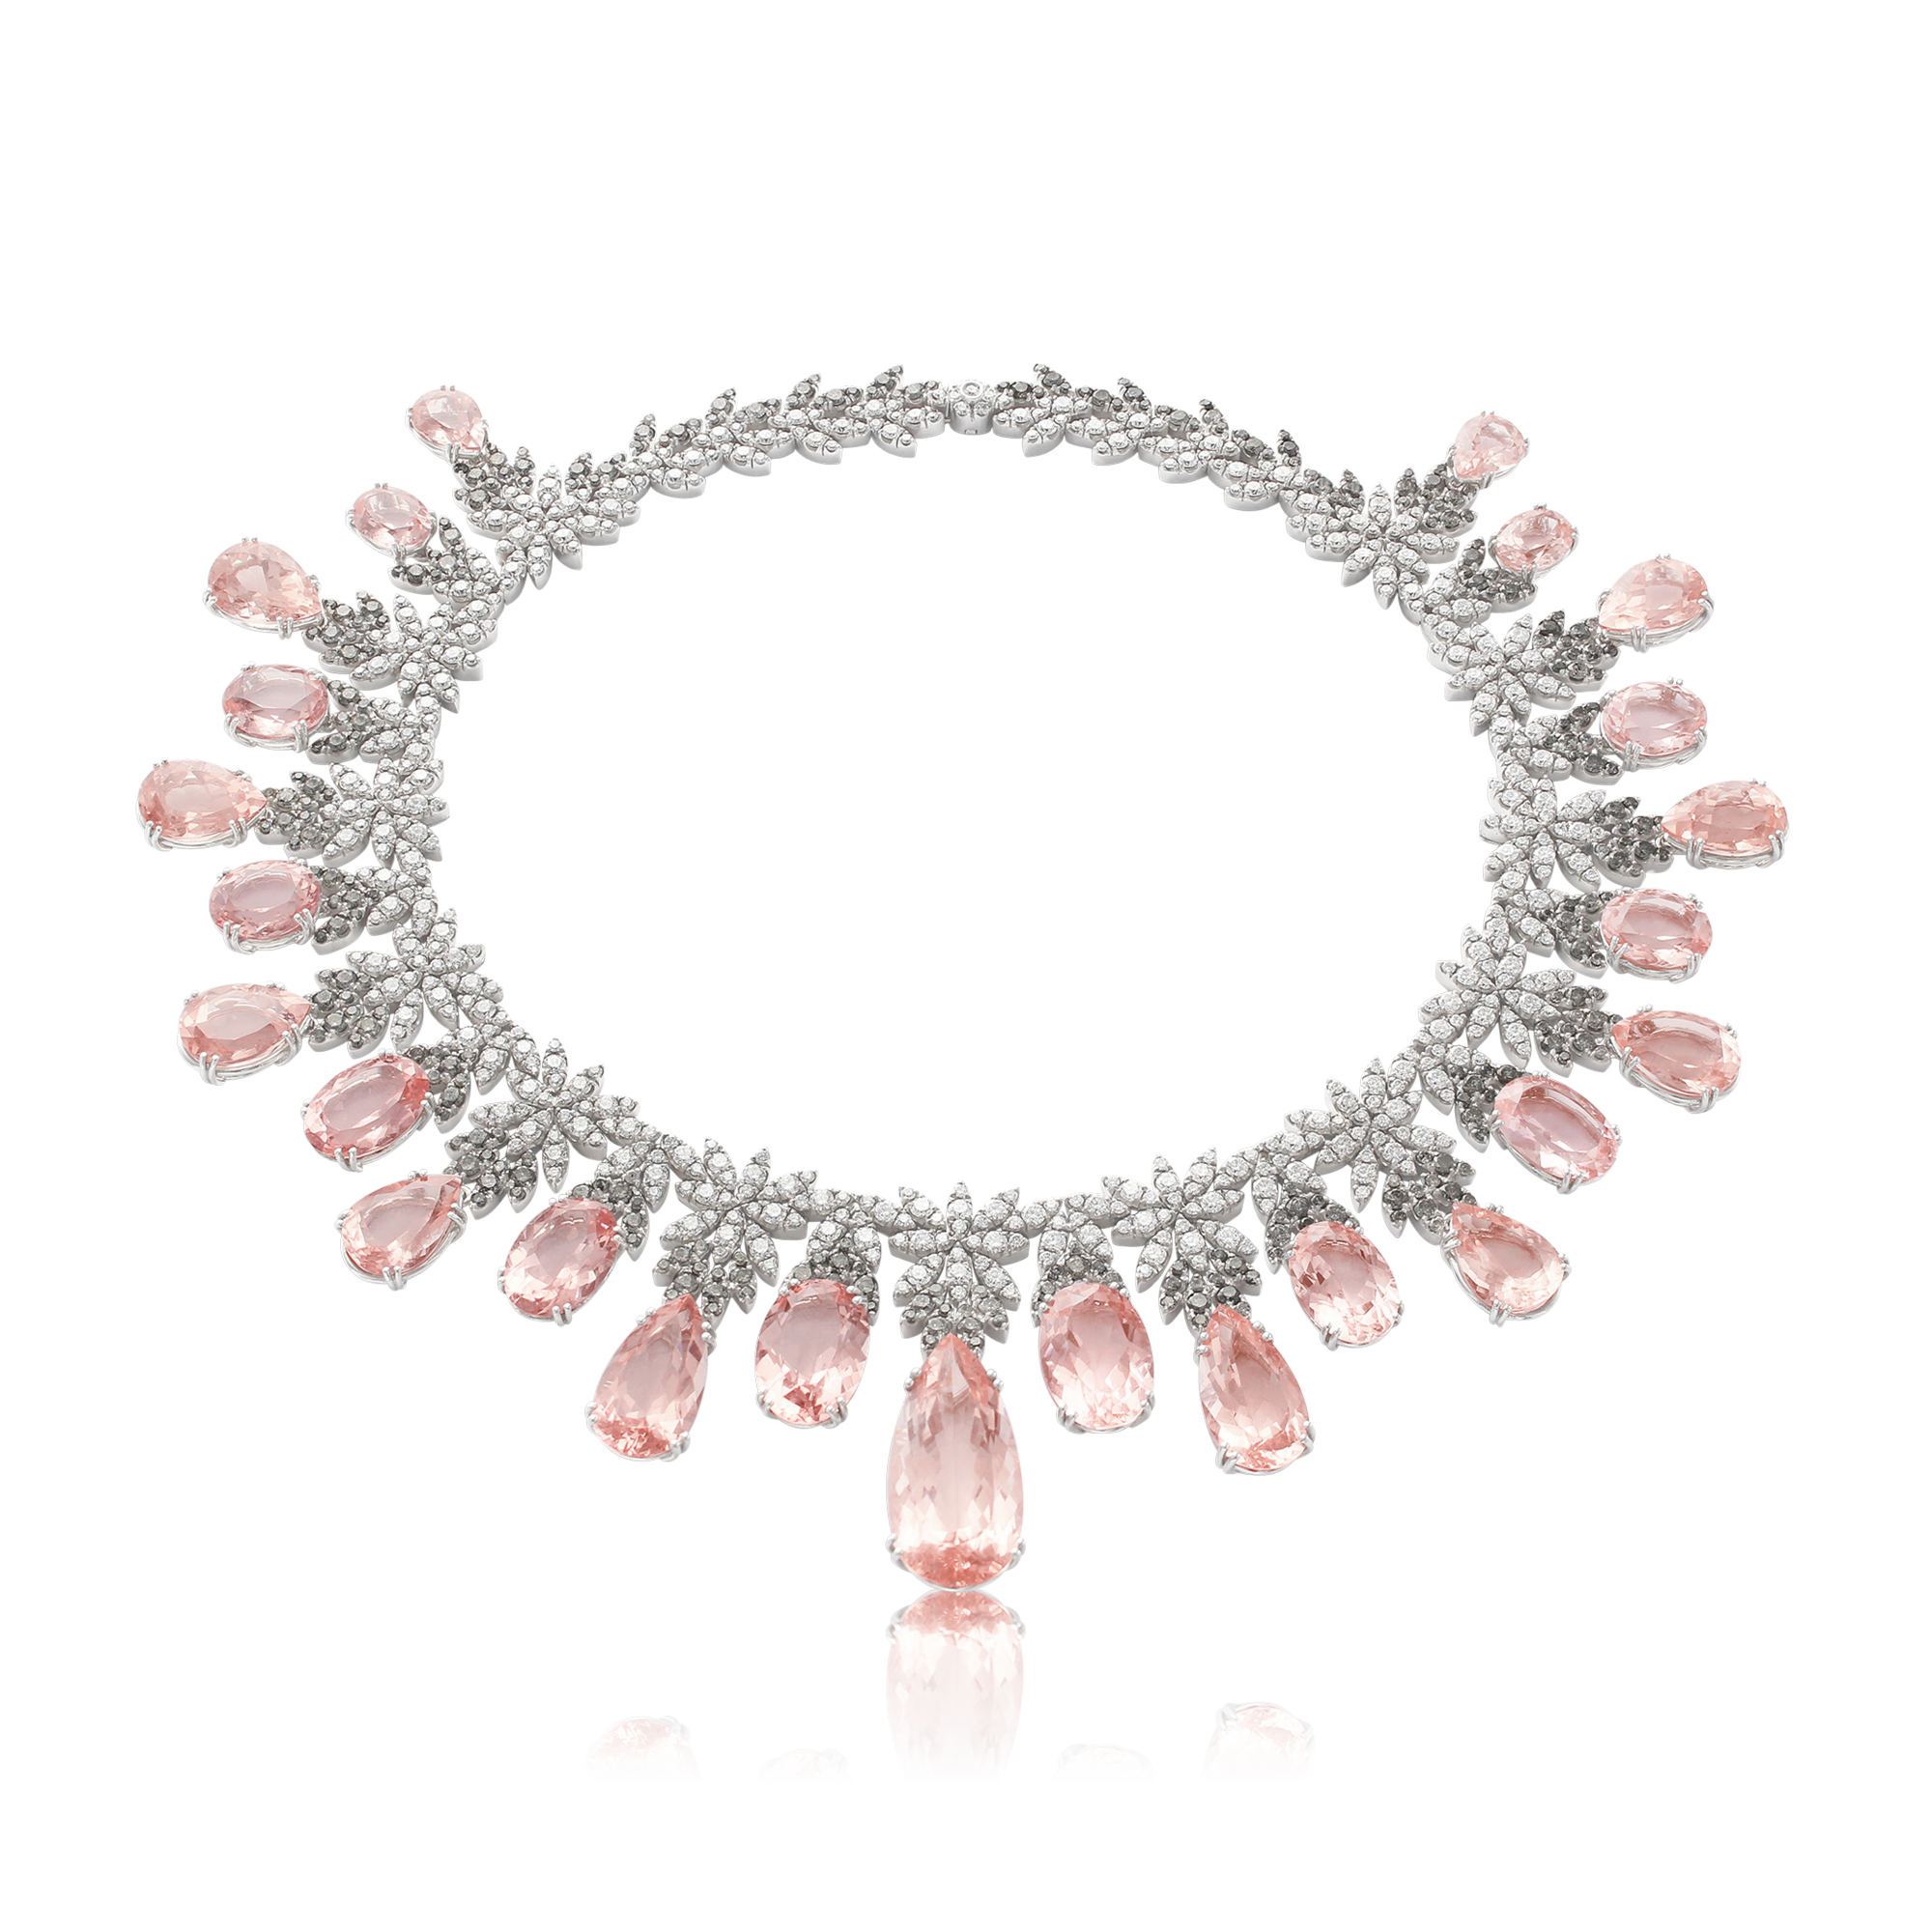 18k White Gold Ghirlanda Haute Couture Necklace with Morganite, White and Grey Diamonds